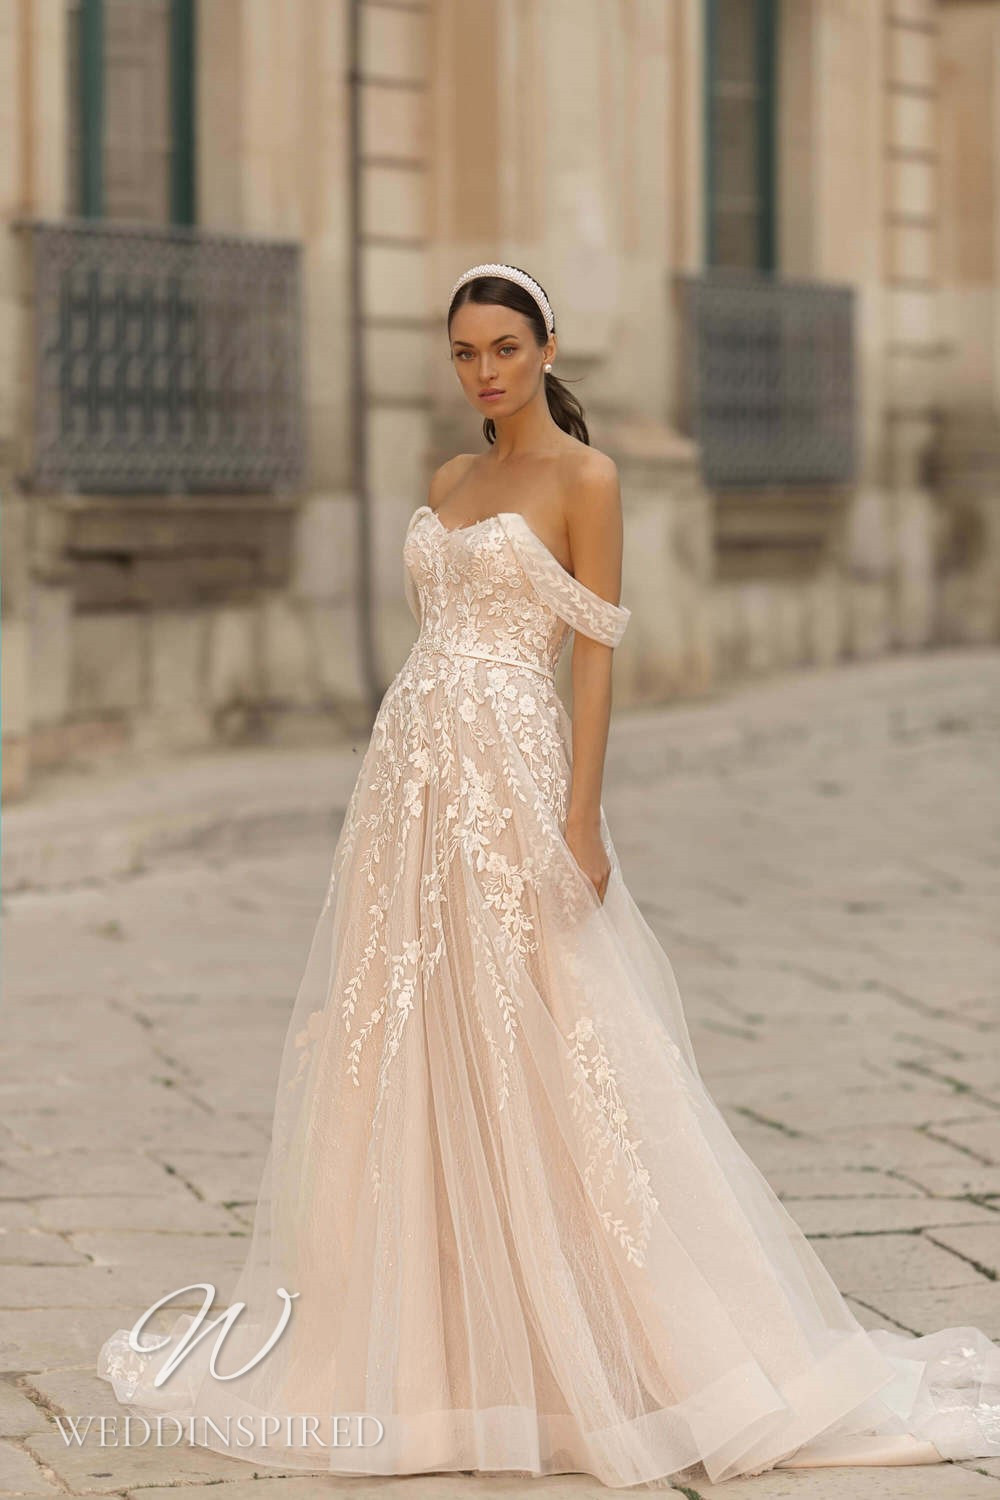 A Lussano 2021 blush lace and tulle off the shoulder A-line wedding dress